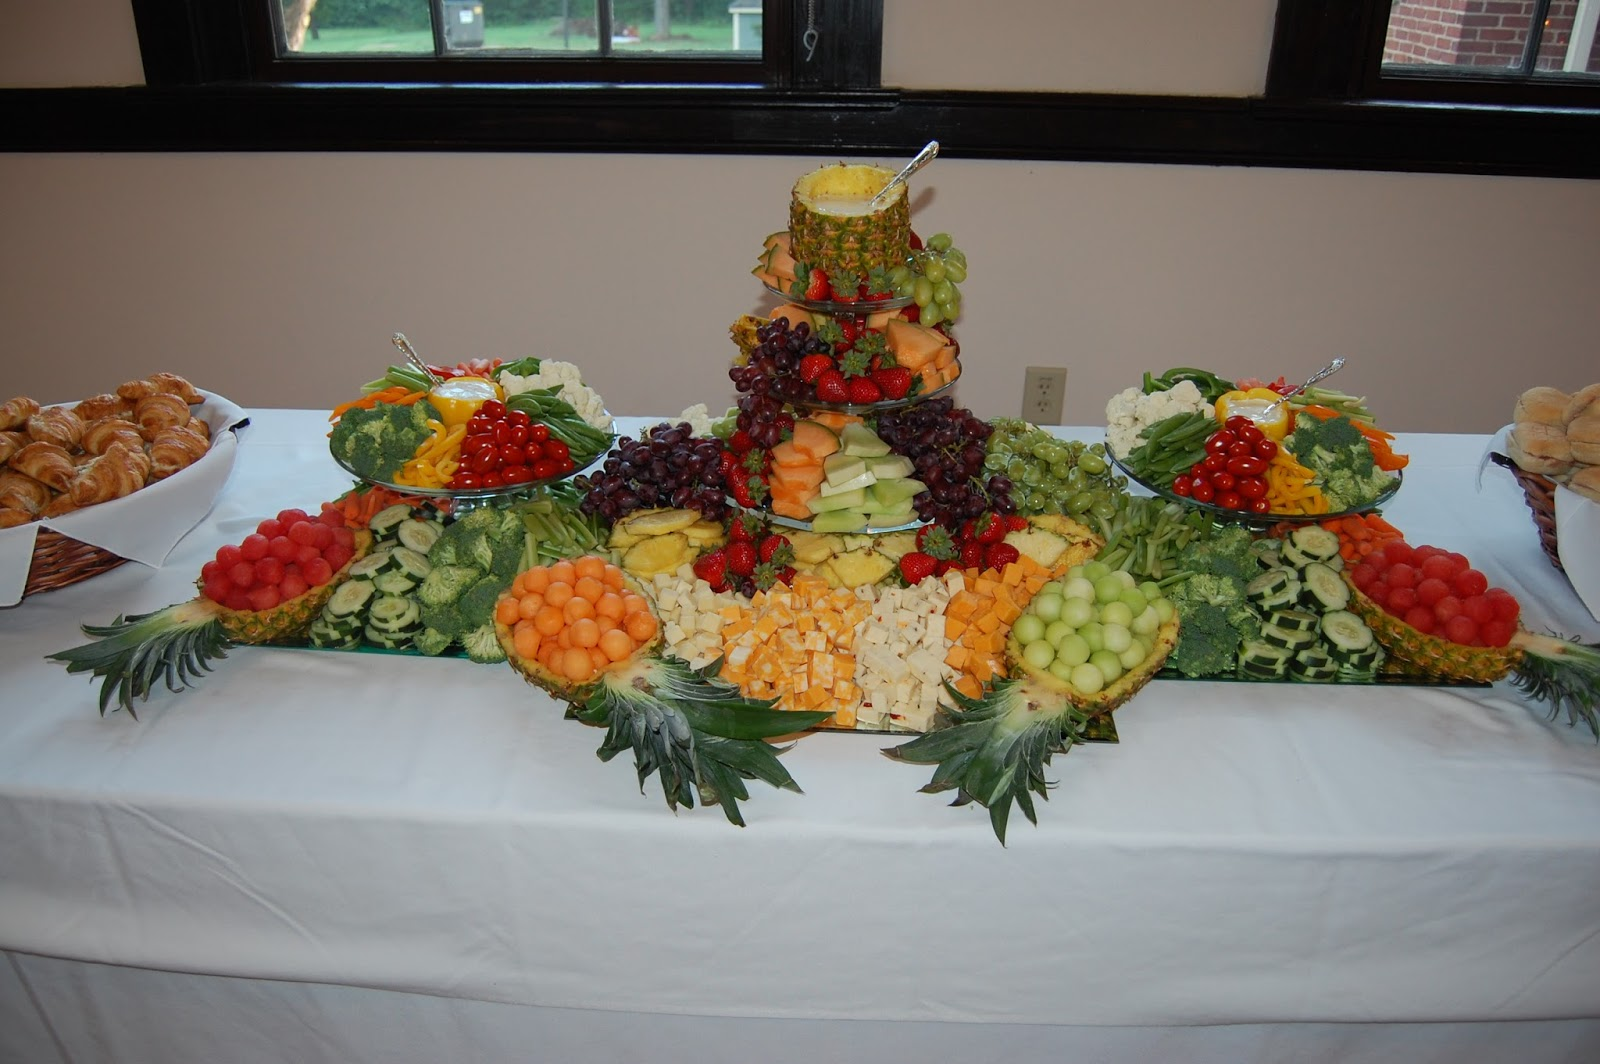 cook create consume fruit vegetable cheese platter centerpiece